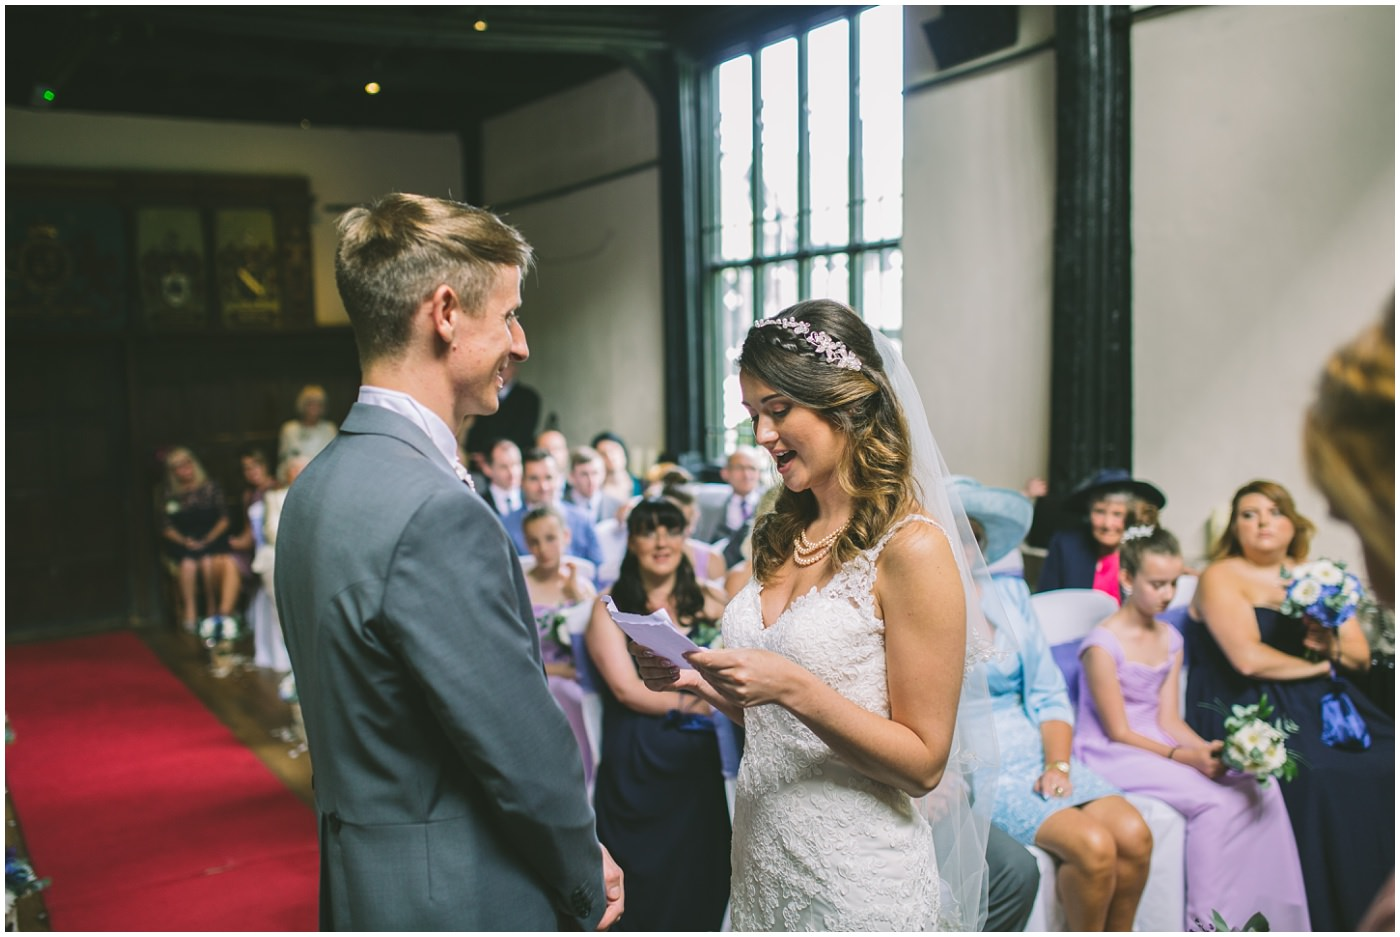 Kaylie and James exchange vows